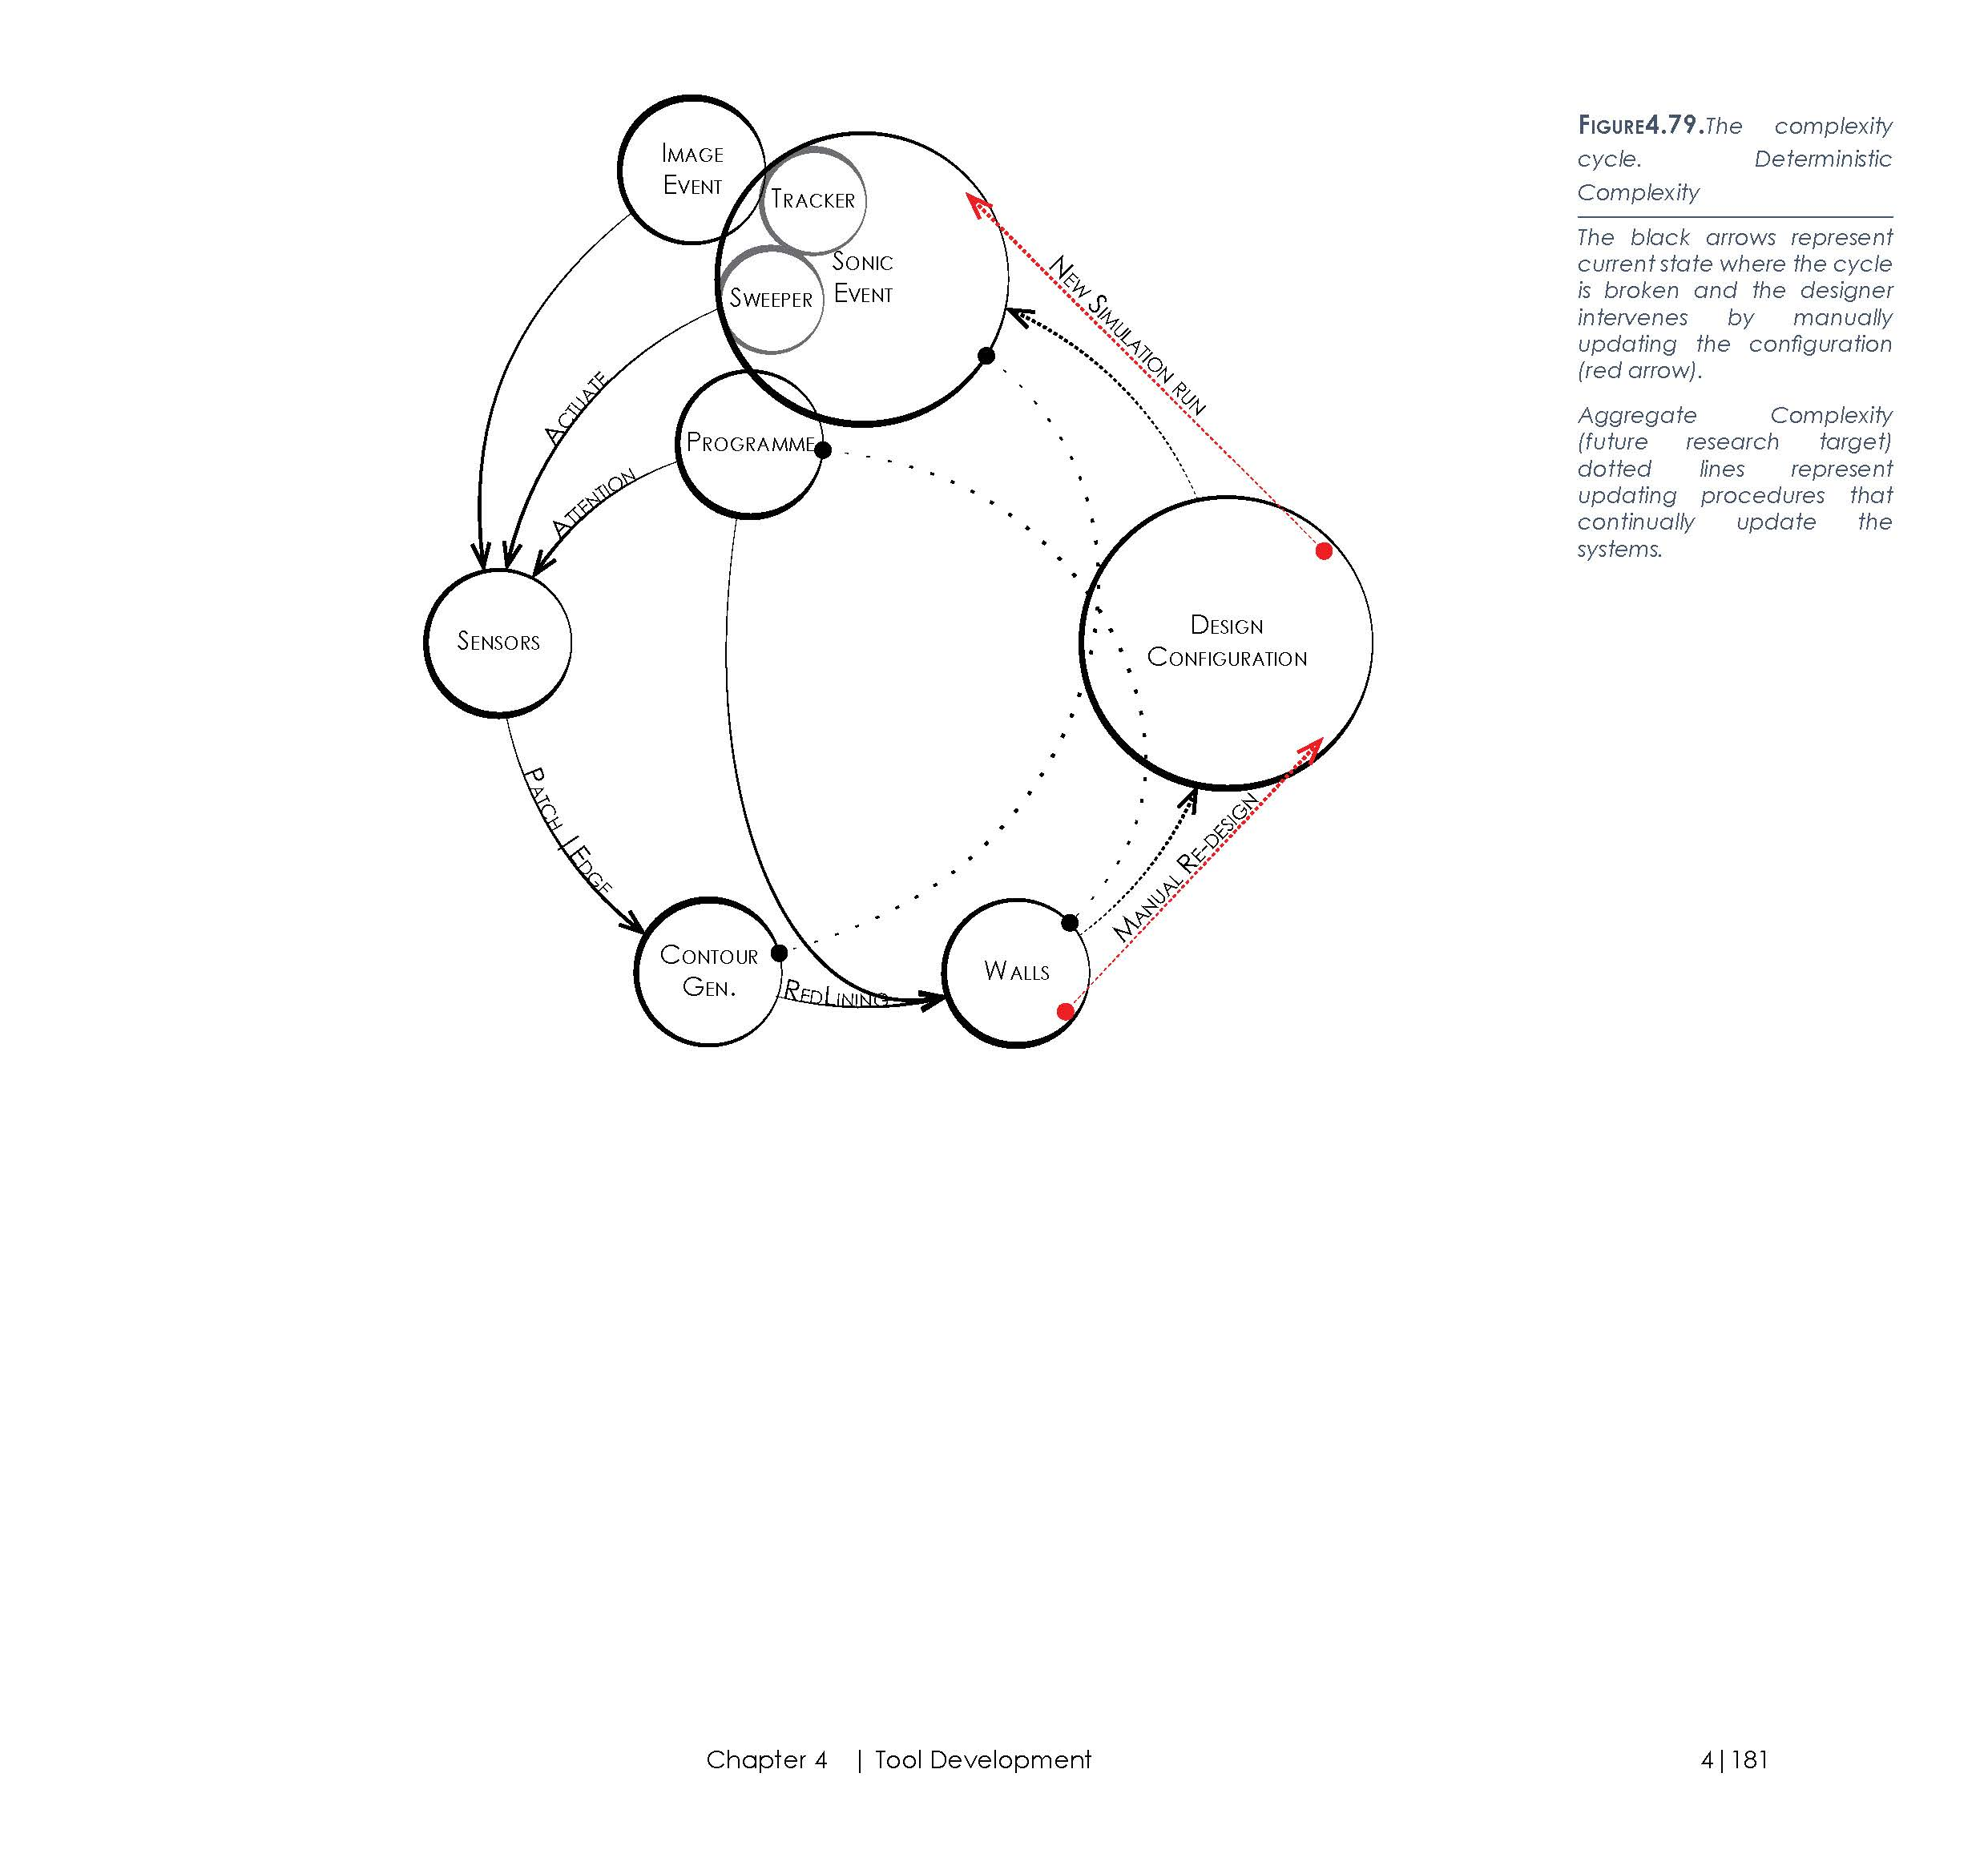 16.03.03_Thesis_01_Interactive_Page_217.jpg